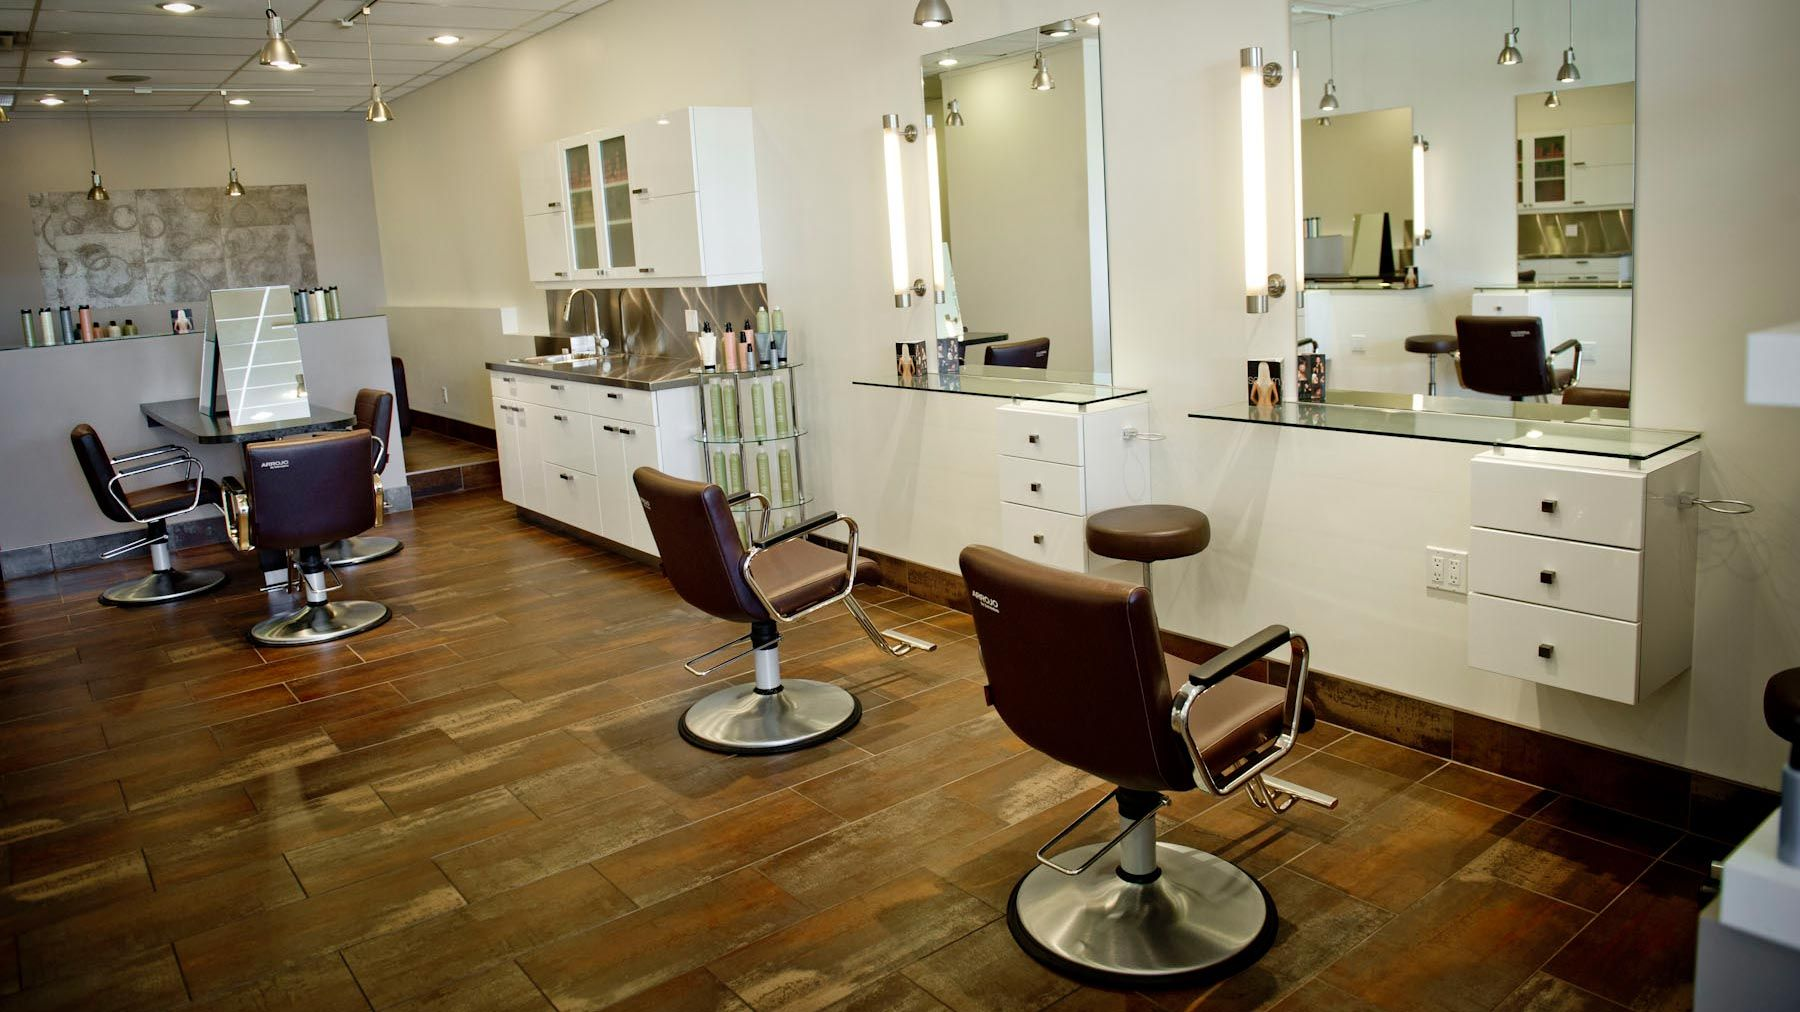 salon interior salon interior design salon design in home salon salon